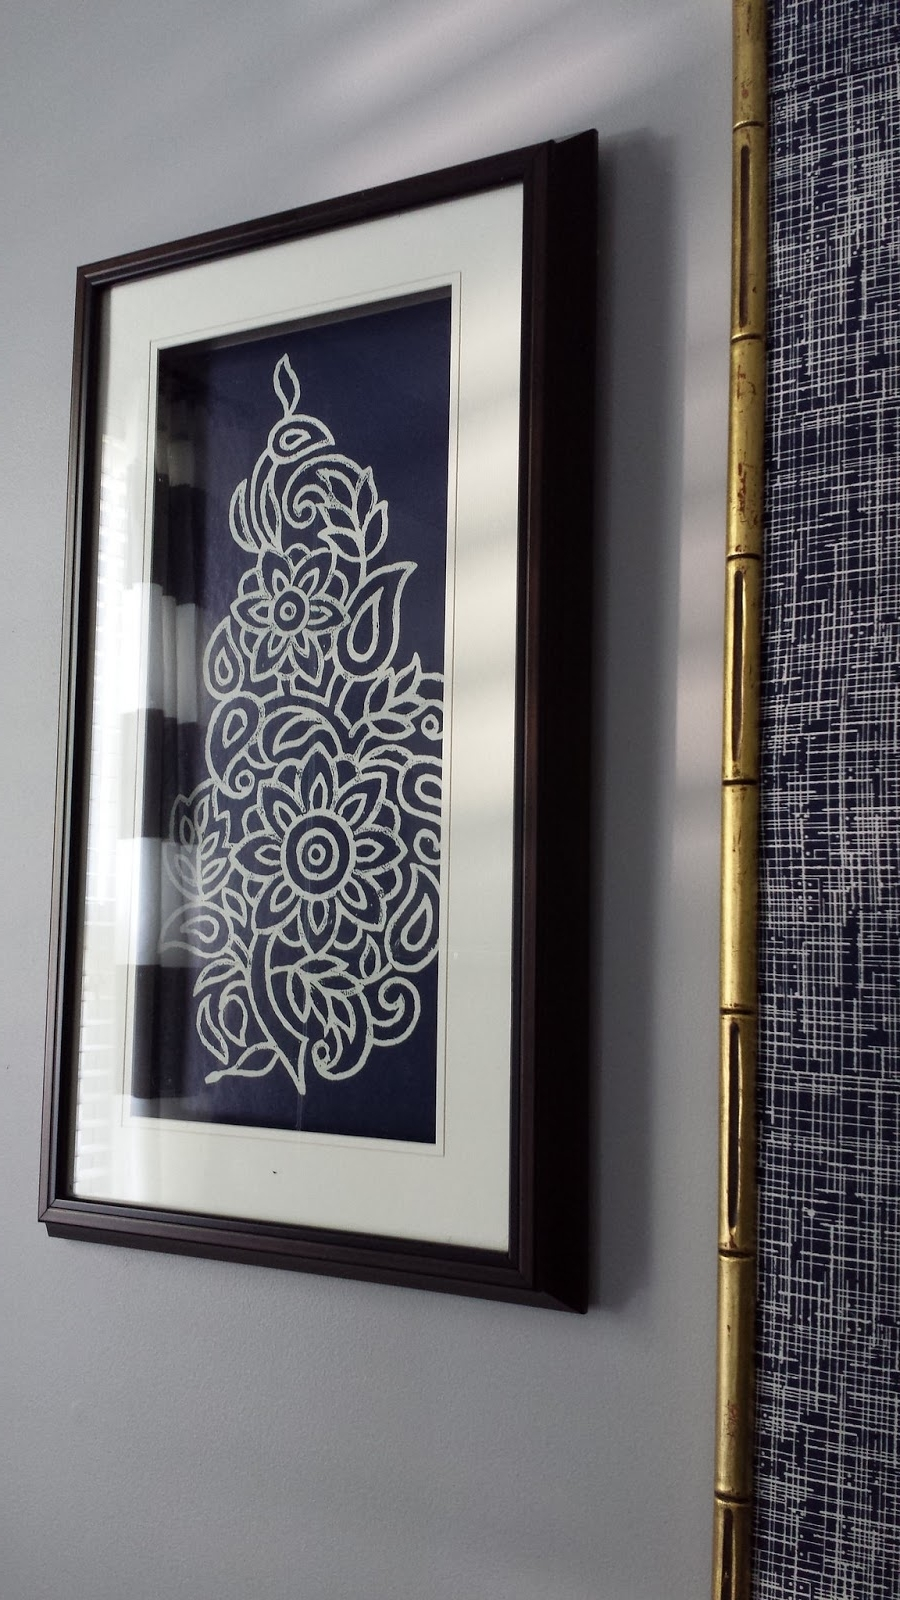 Framed Fabric Wall Art Within Recent Focal Point Styling: Diy Indigo Wall Art With Framed Fabric (View 3 of 15)